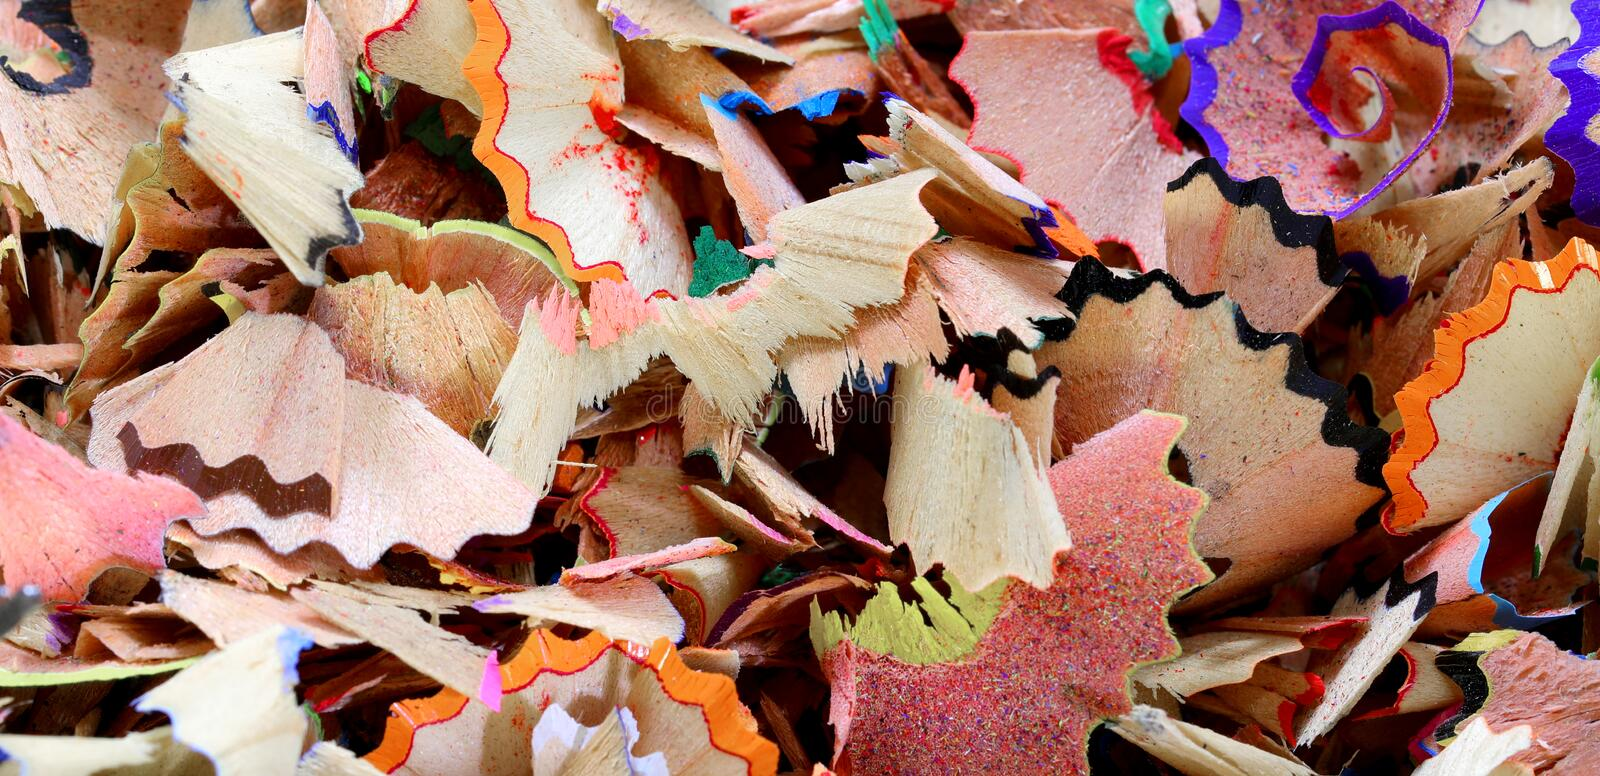 background of many colored pencils shavings royalty free stock photography